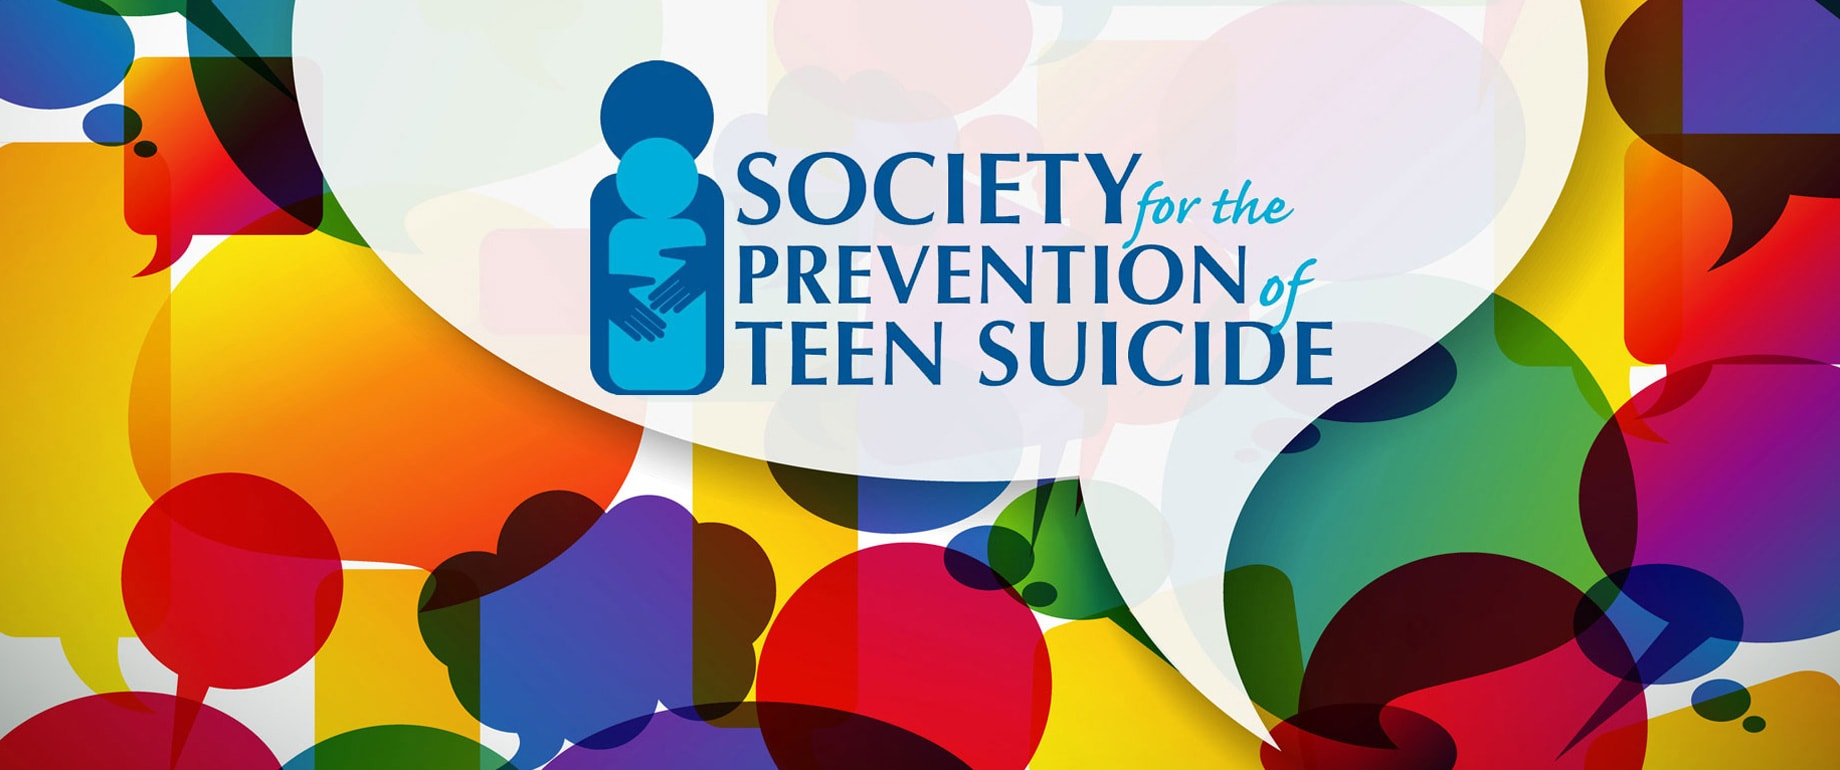 teenage suicide research papers Essay teenage suicide suicide is intentional self-inflicted acts that end in death( suicide, compton's) after a series of traumatic events, normal coping abilities can be pushed over the edge the result may be suicide in each year, an average of 30000 suicide deaths occur in the united states it is estimated that 5000 of.